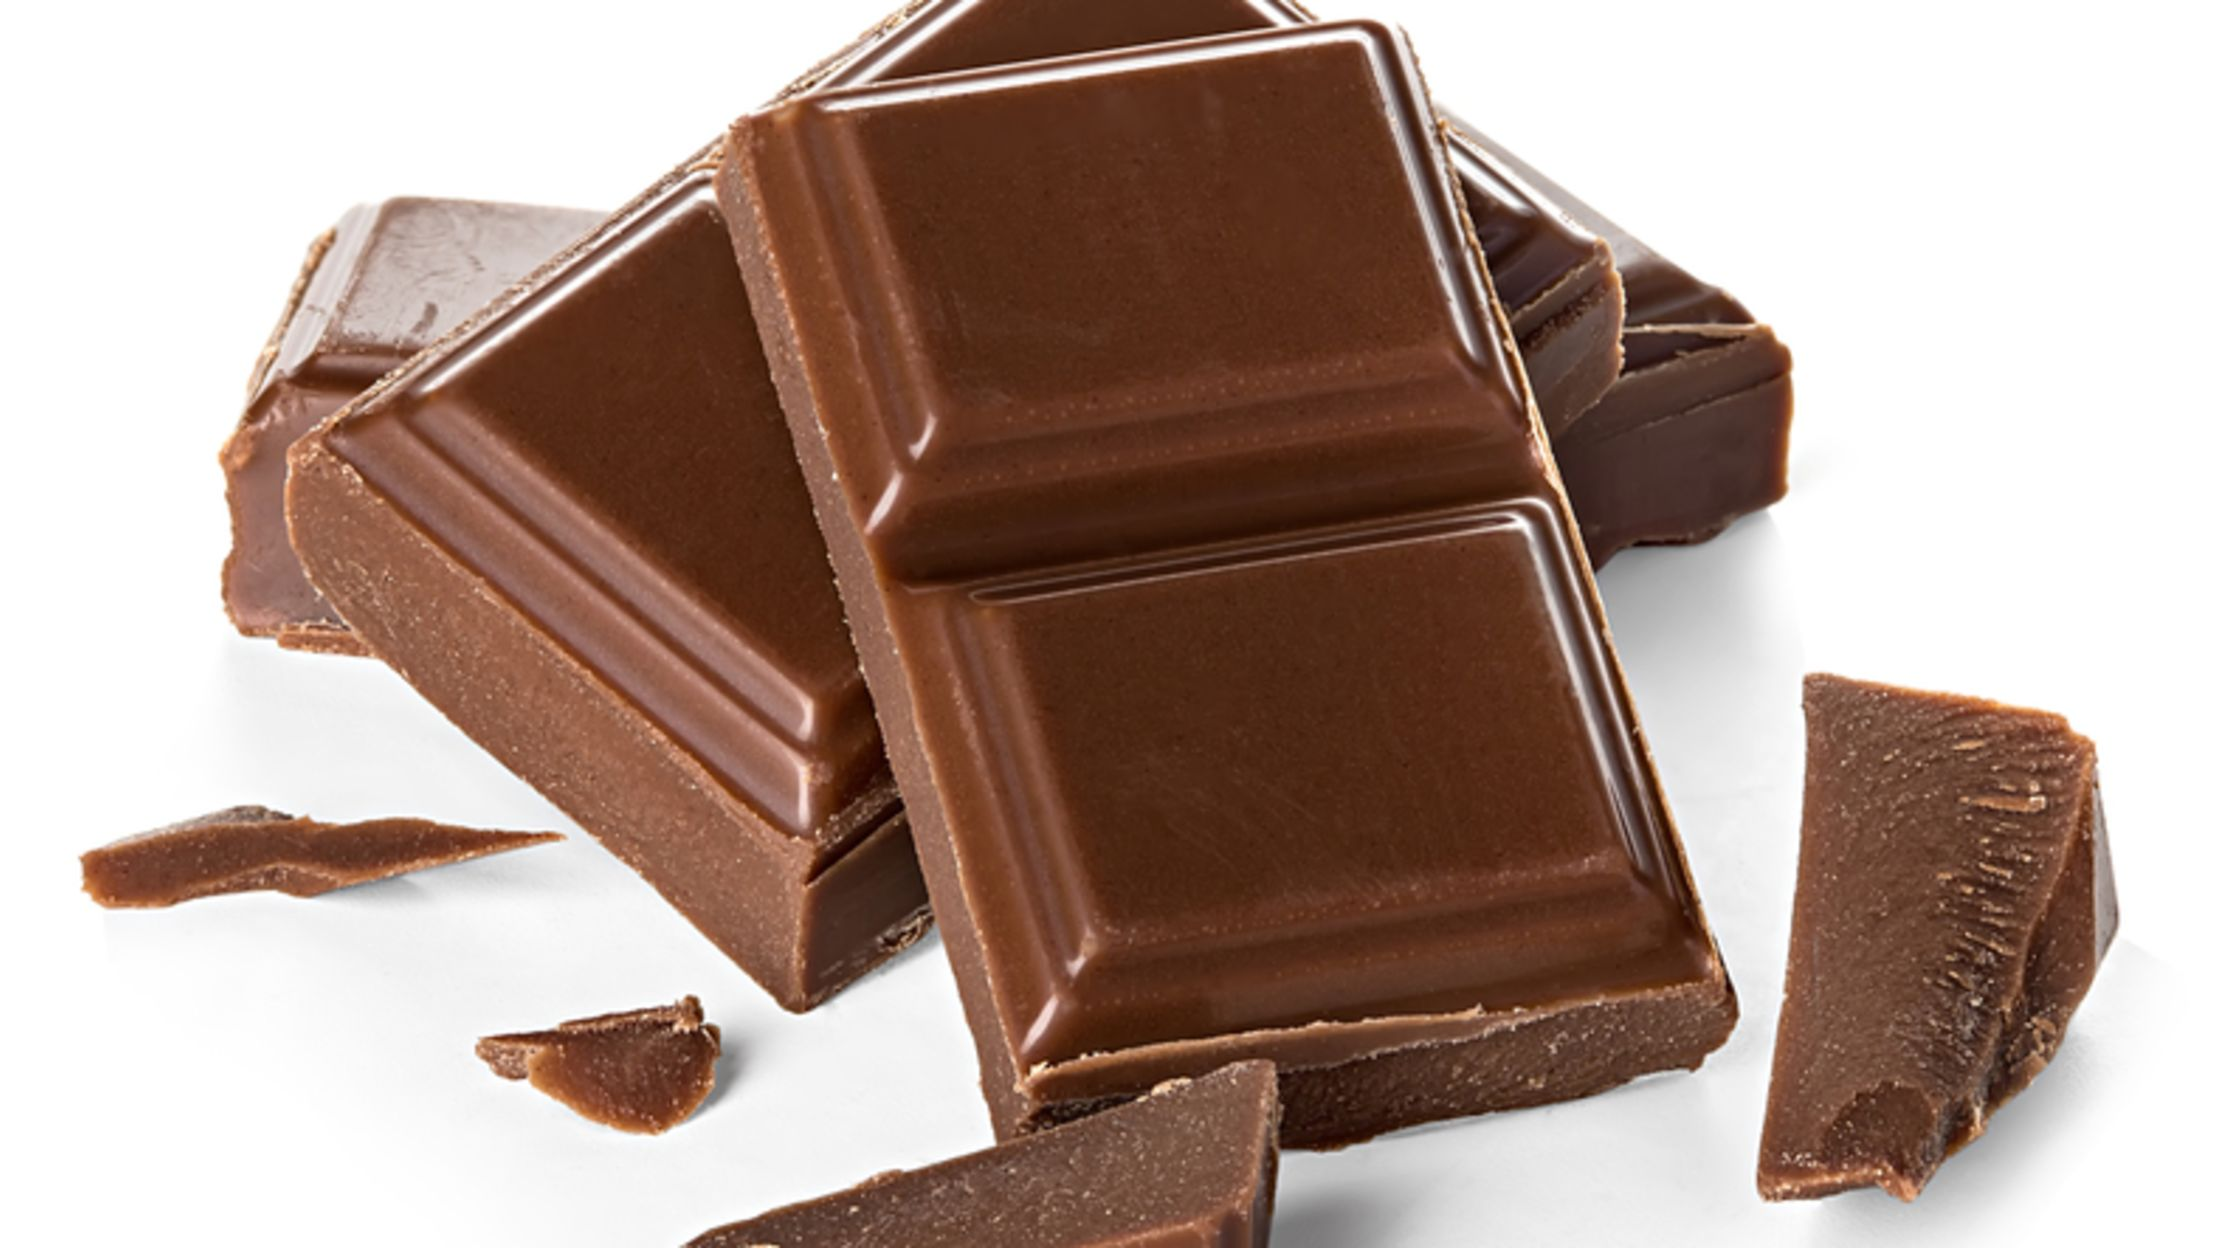 5b2b9944f53e 15 Chocolate Companies You Have to Try | Mental Floss